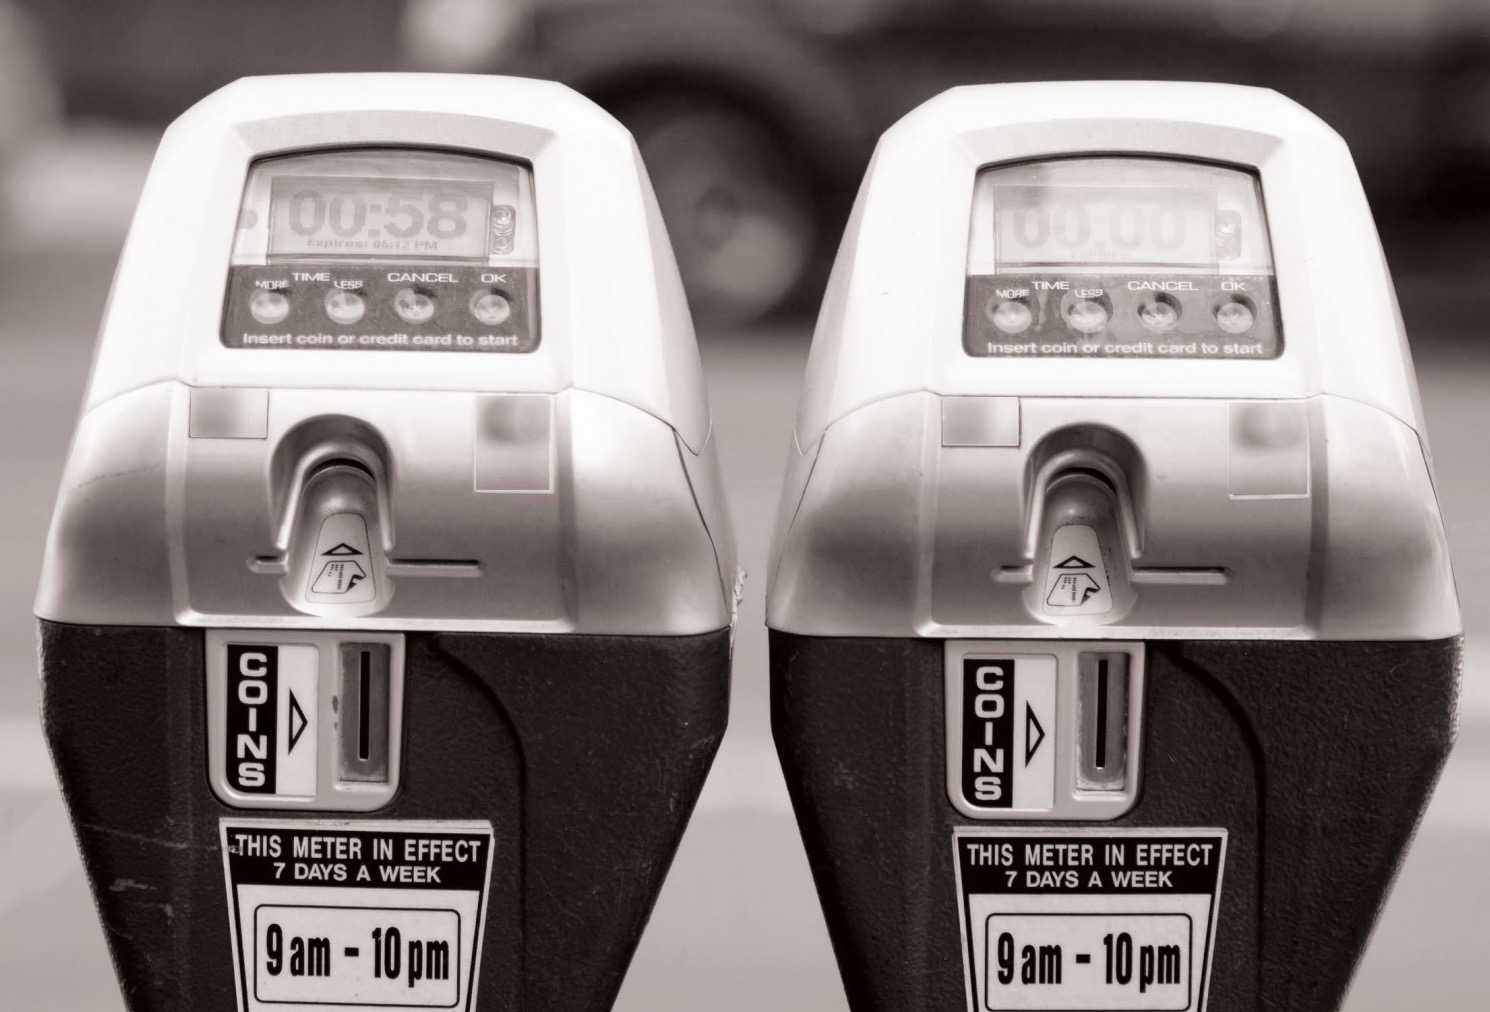 manhattan institute - parking meters